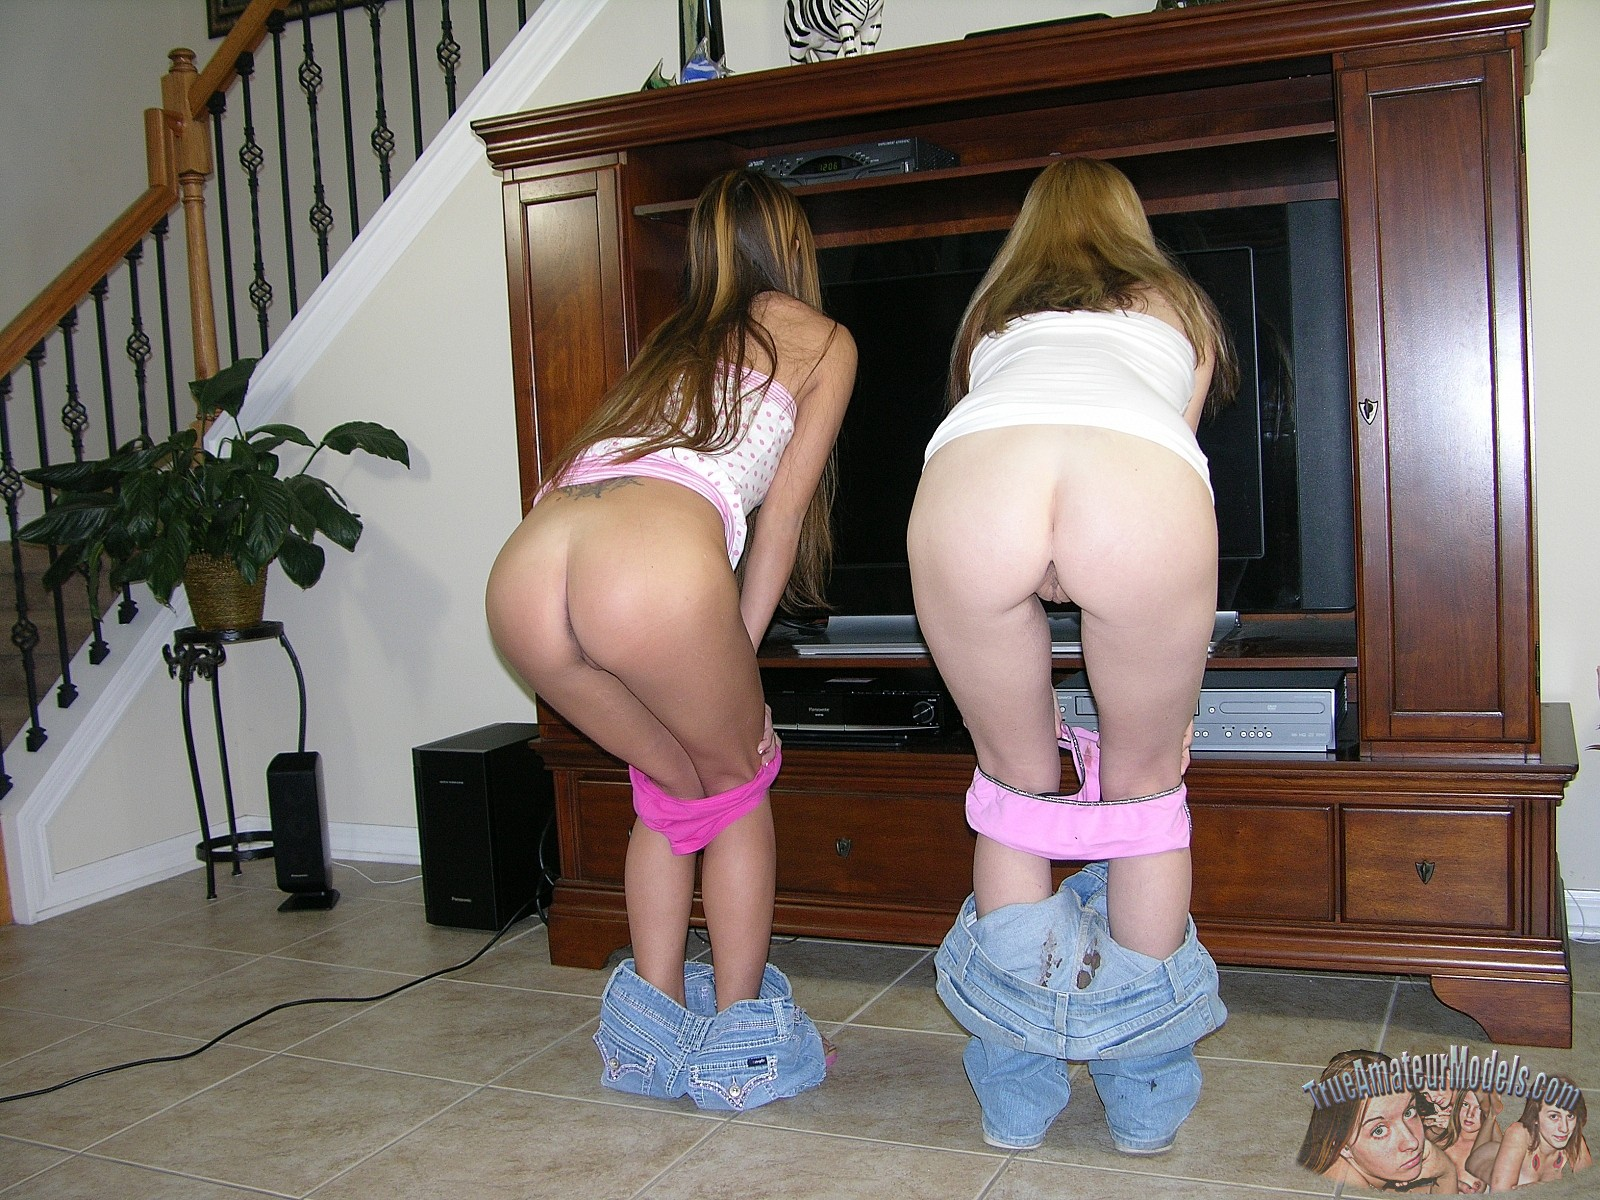 Down over panties candid girls bent